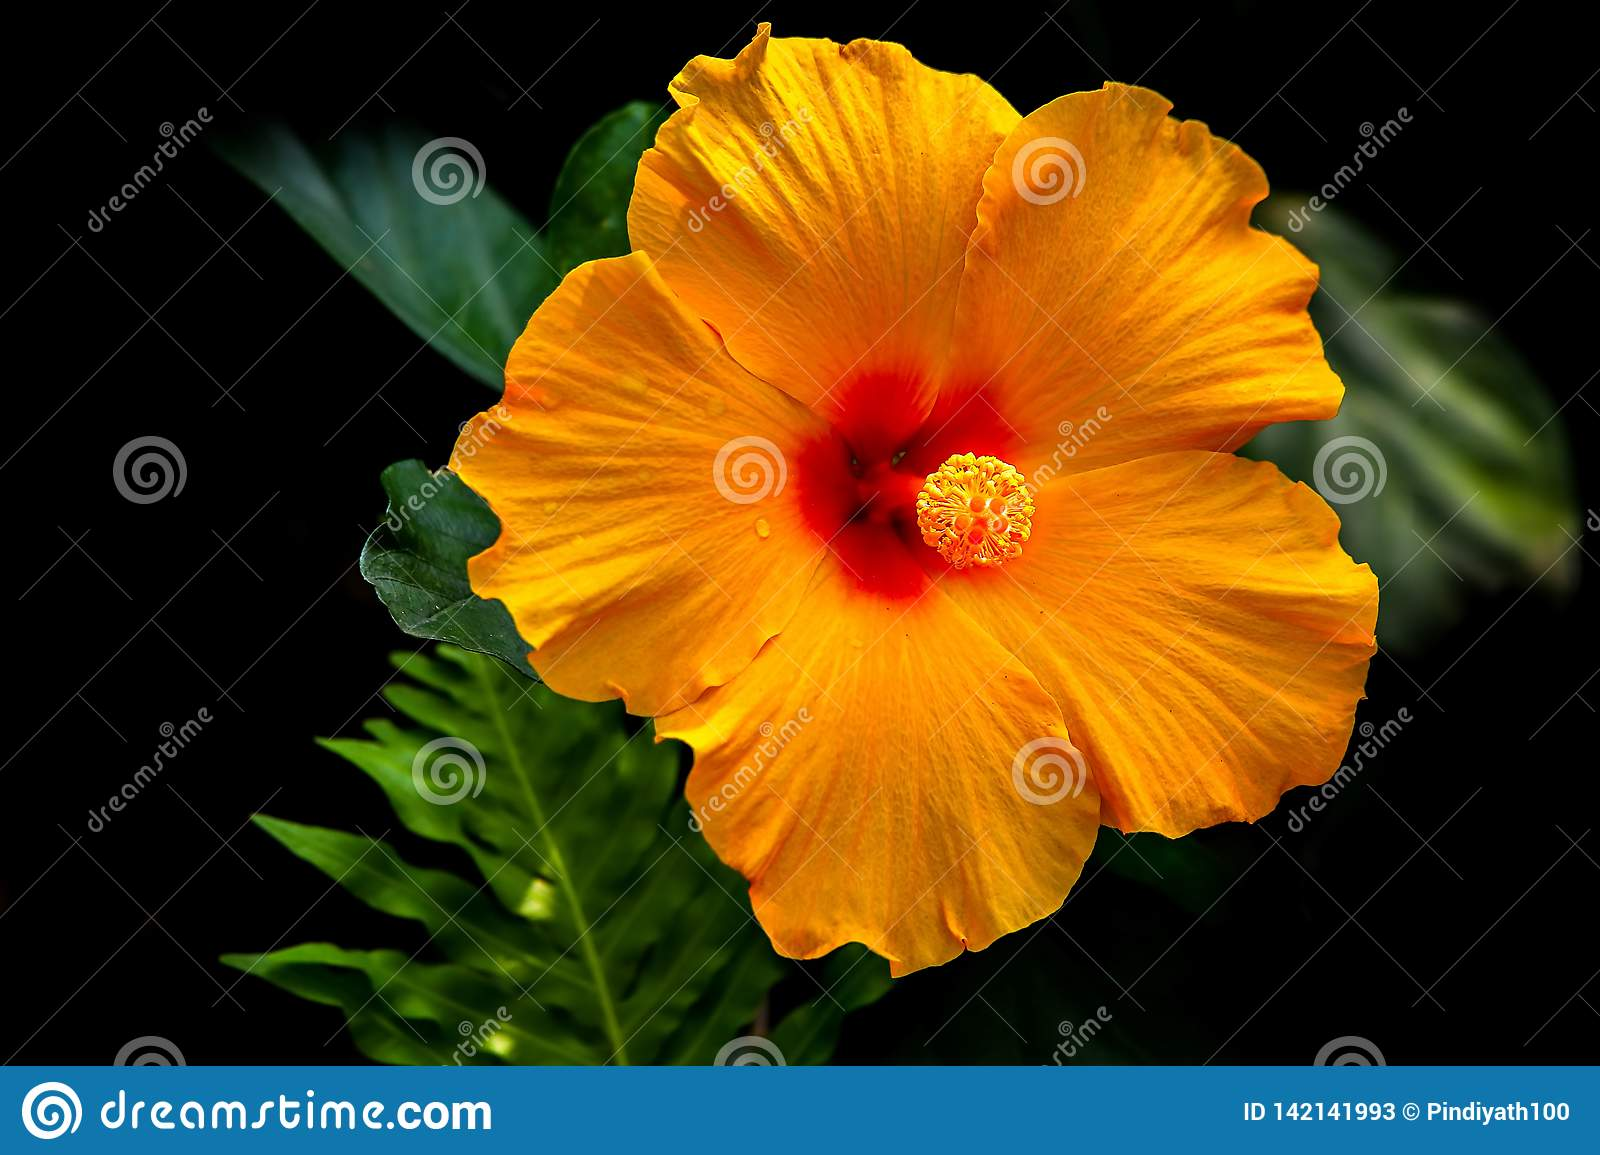 Beautiful And Bright Chinese Hibiscus Flower Stock Image - Image of